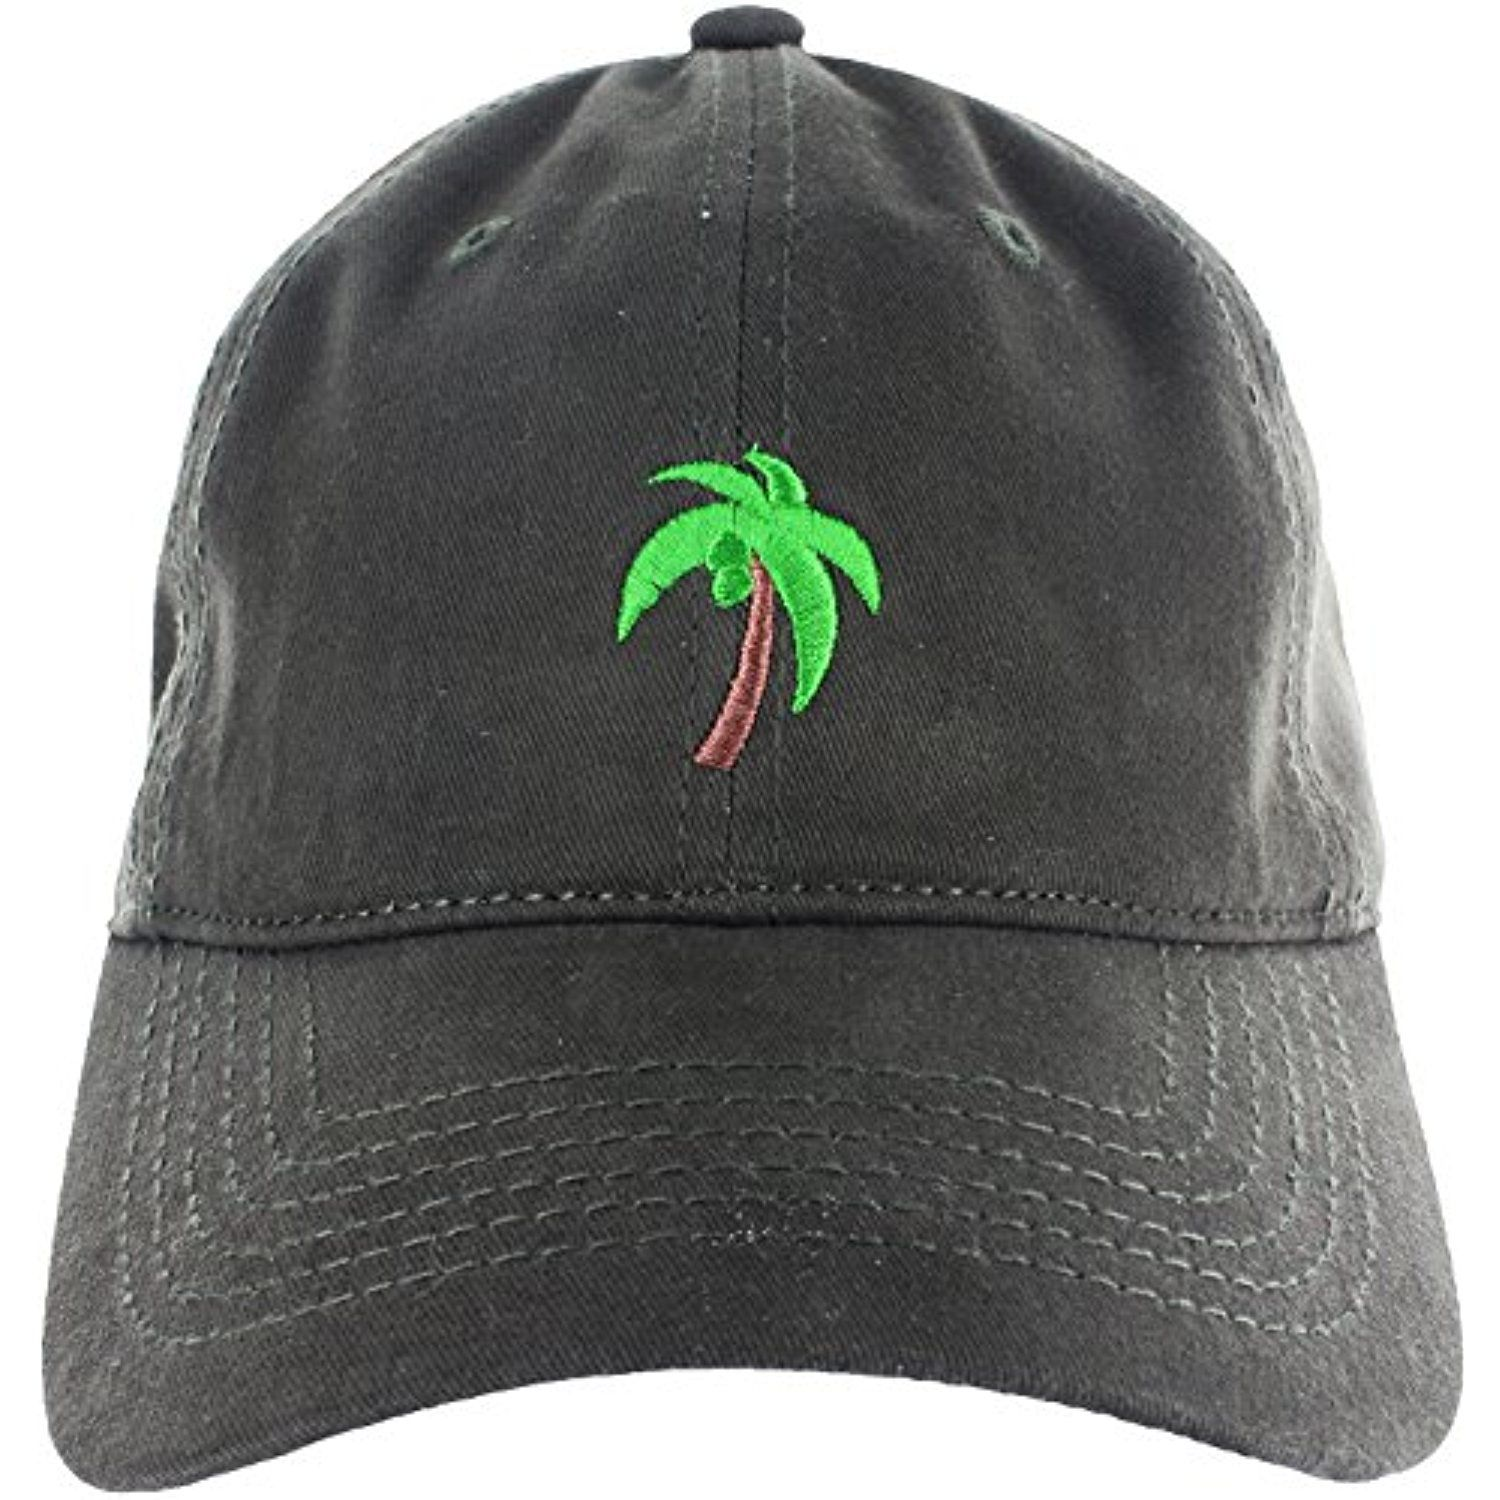 Palm Tree Hat Dad Hat Coconut Tree Embroidered Adjustable Baseball Cap      Click image for more details. (This is an affiliate link)  Accessories db9541d935